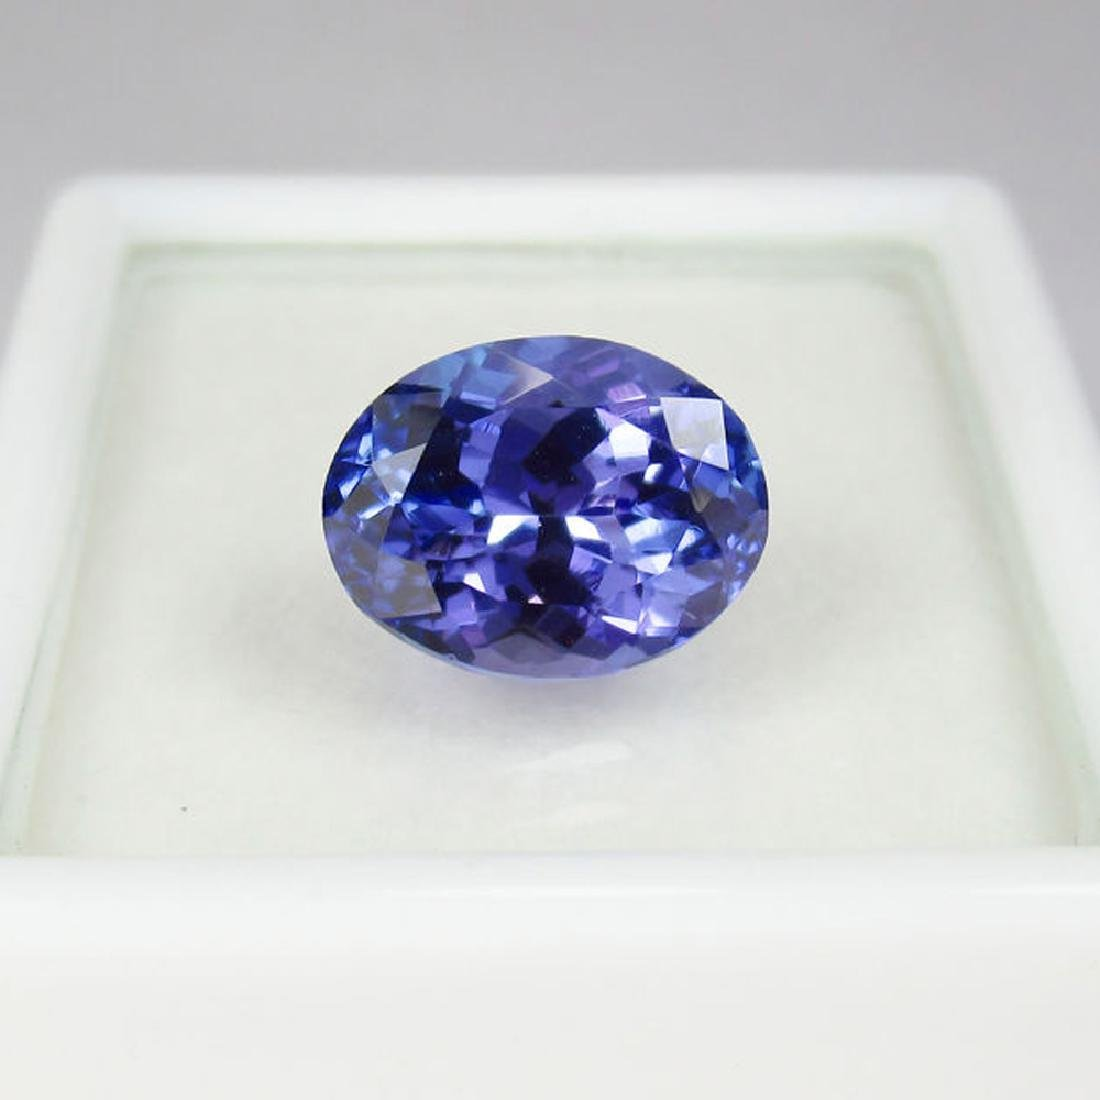 3.05 Ctw  IGI Certified Natural Loose Oval Tanzanite